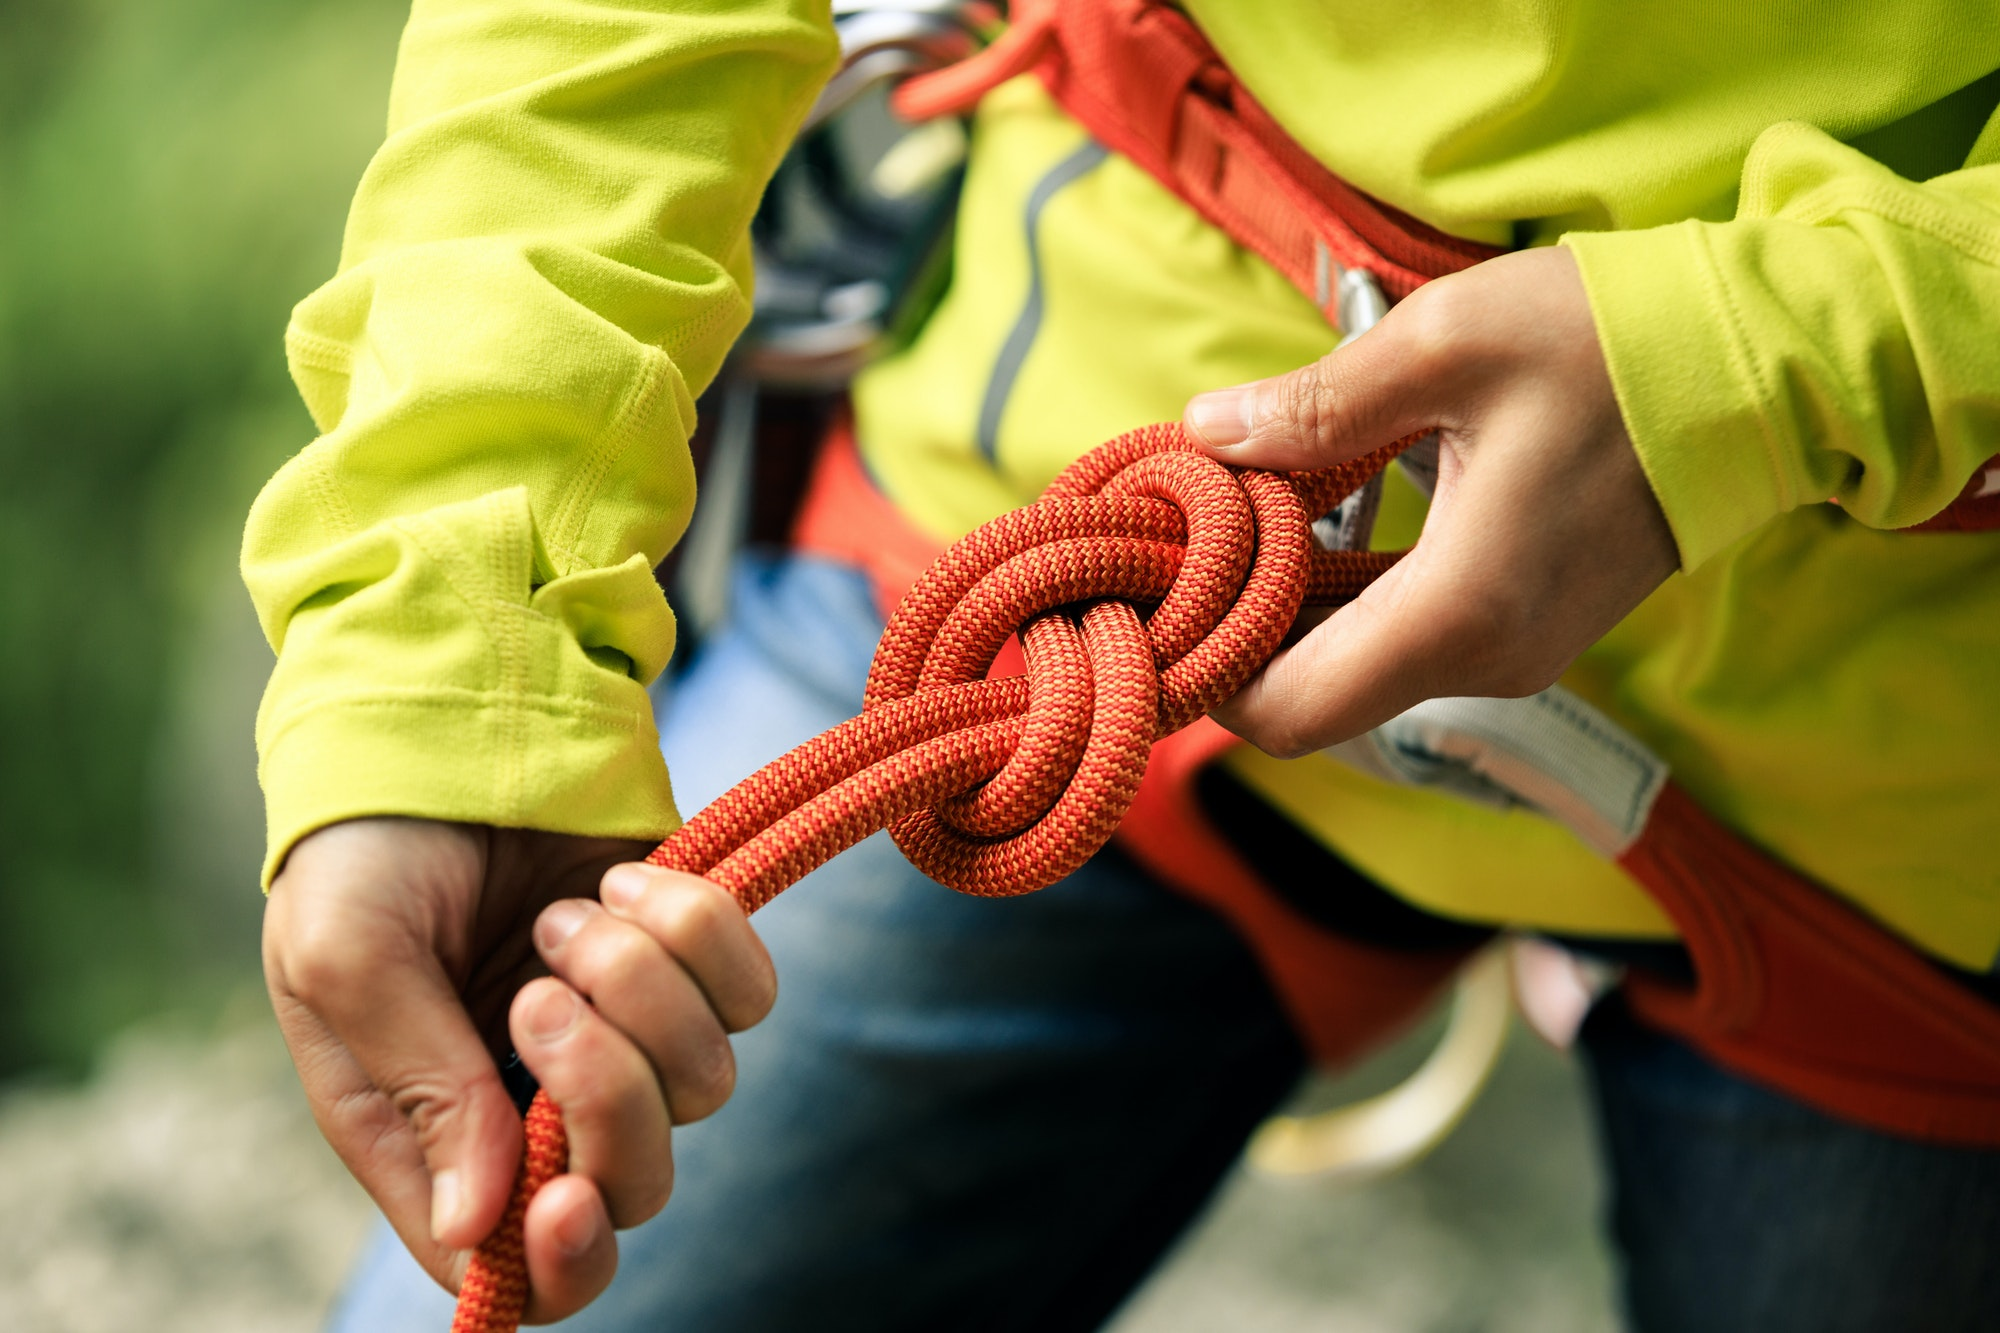 Rope knot for climbing